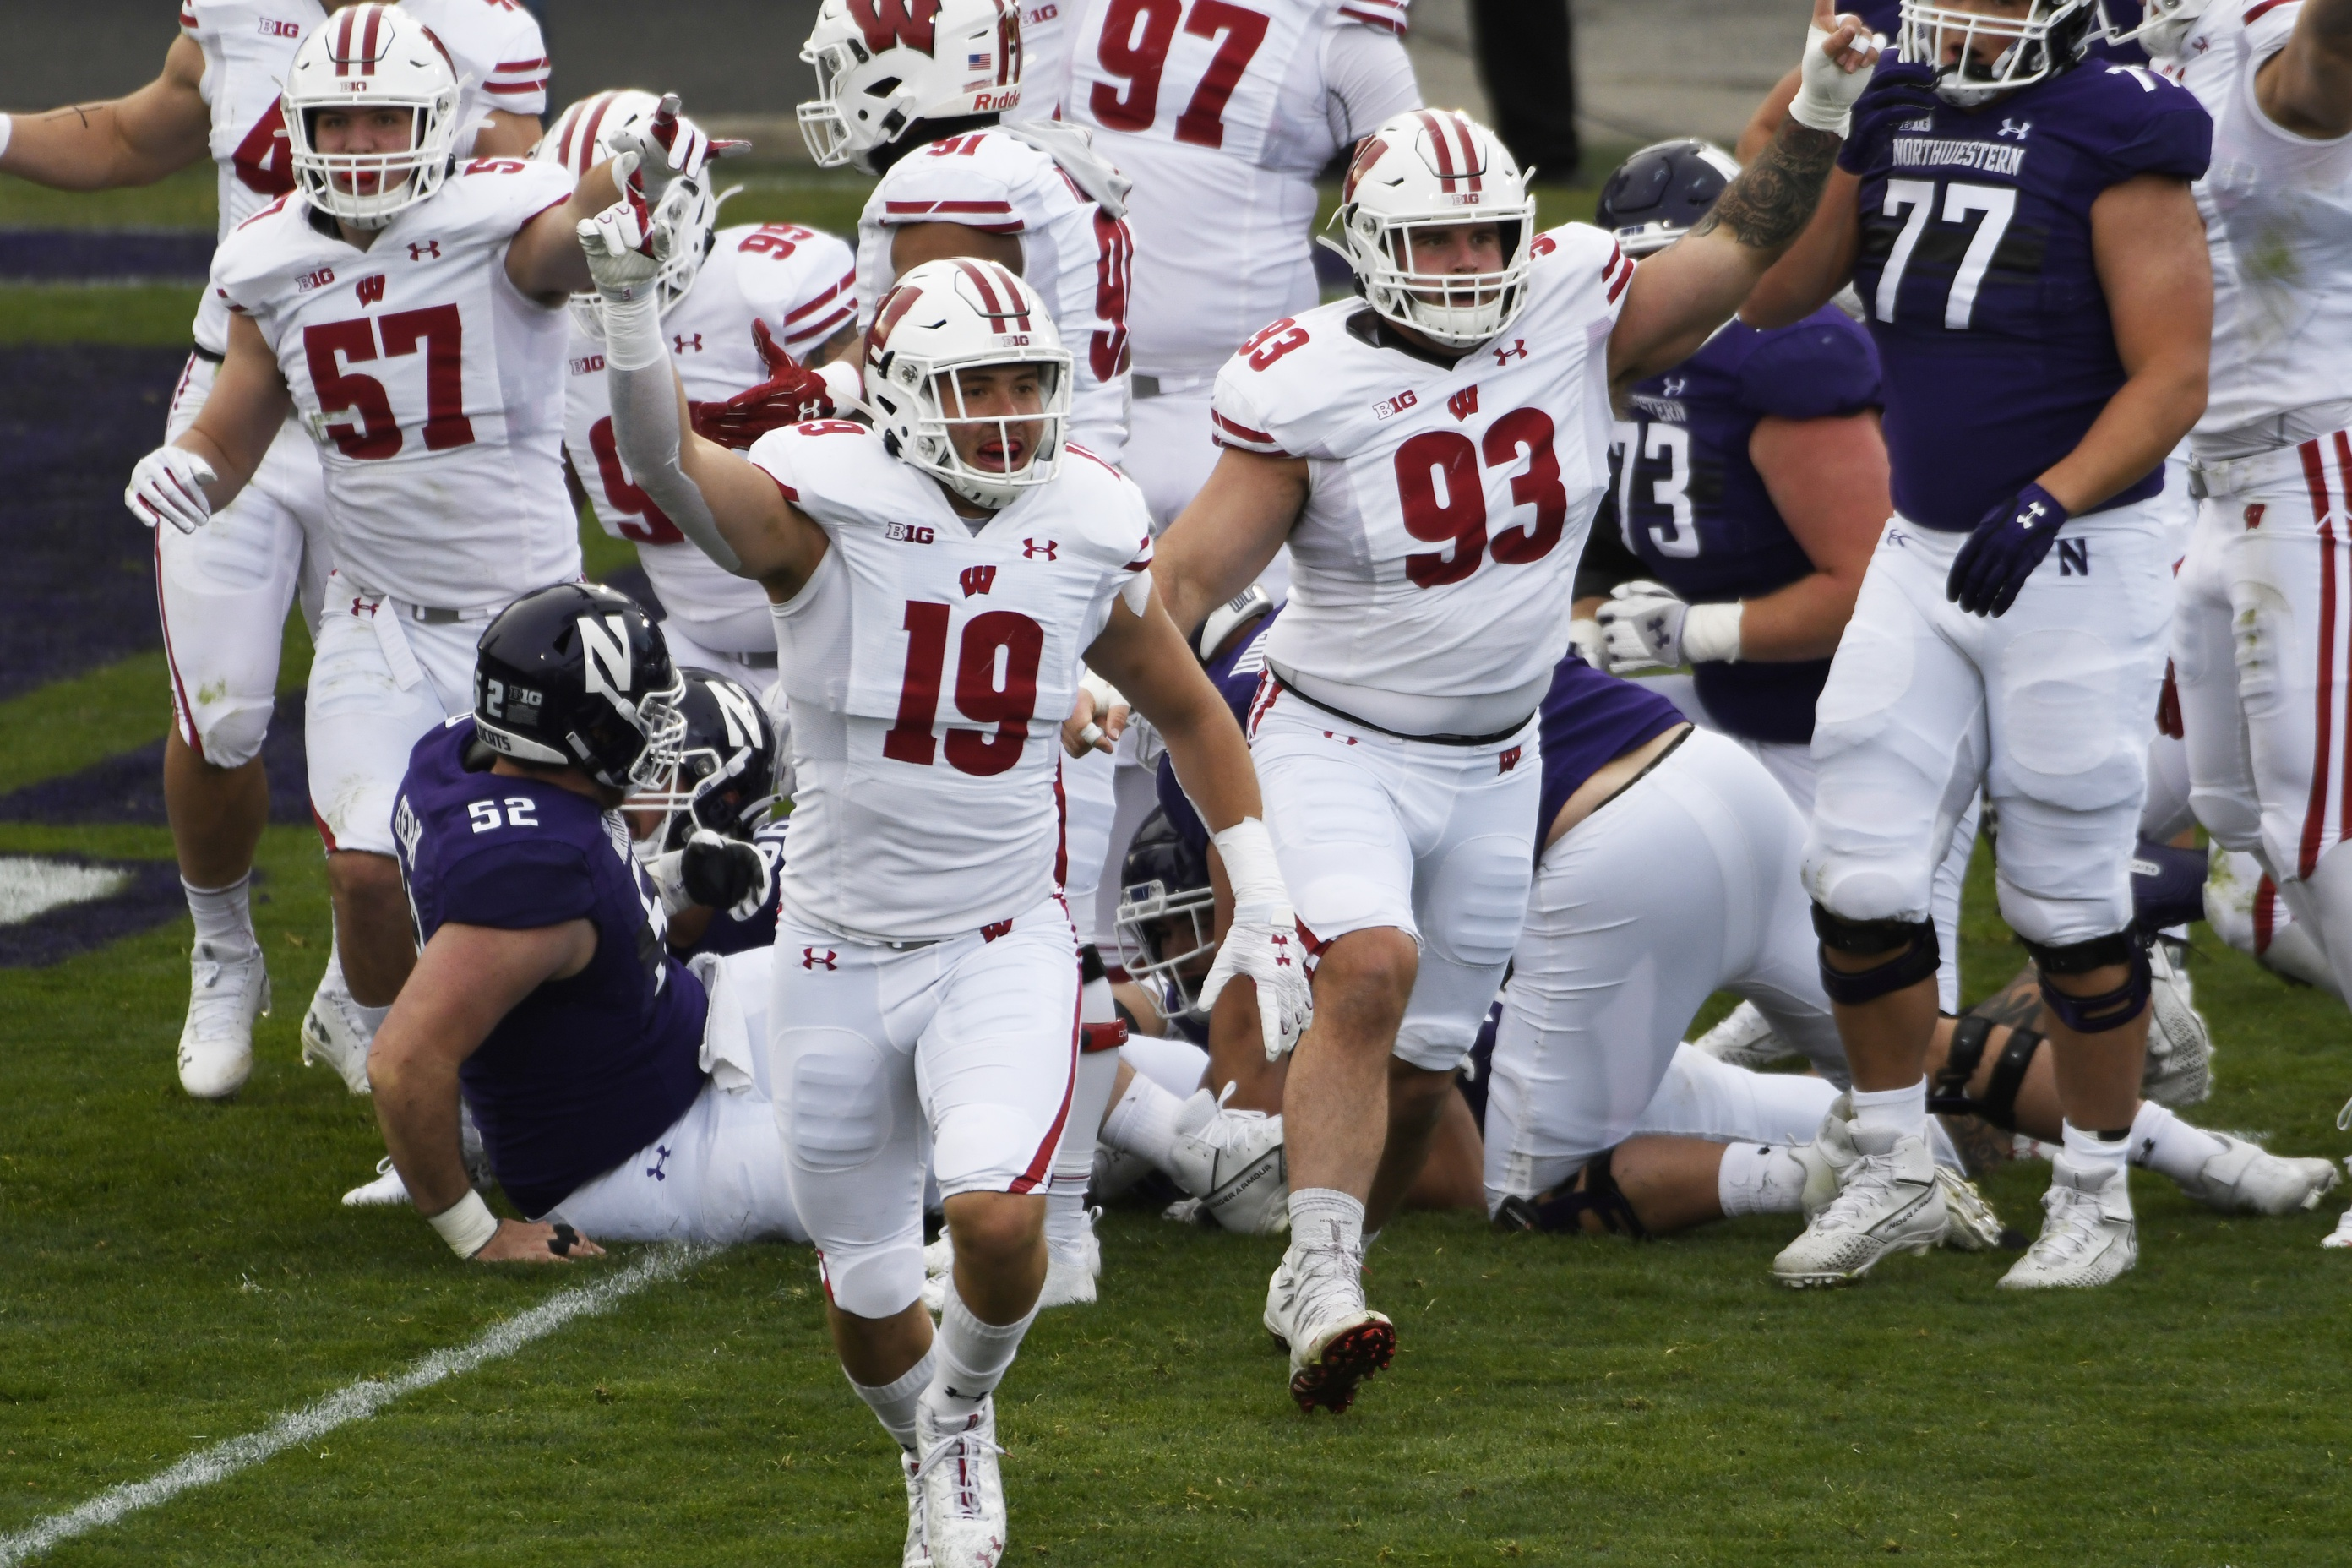 Nov 21, 2020; Evanston, Illinois, USA; Wisconsin Badgers linebacker Nick Herbig (19) celebrates his team's fumble recovery against the Northwestern Wildcats during the first half at Ryan Field. Mandatory Credit: David Banks-USA TODAY Sports